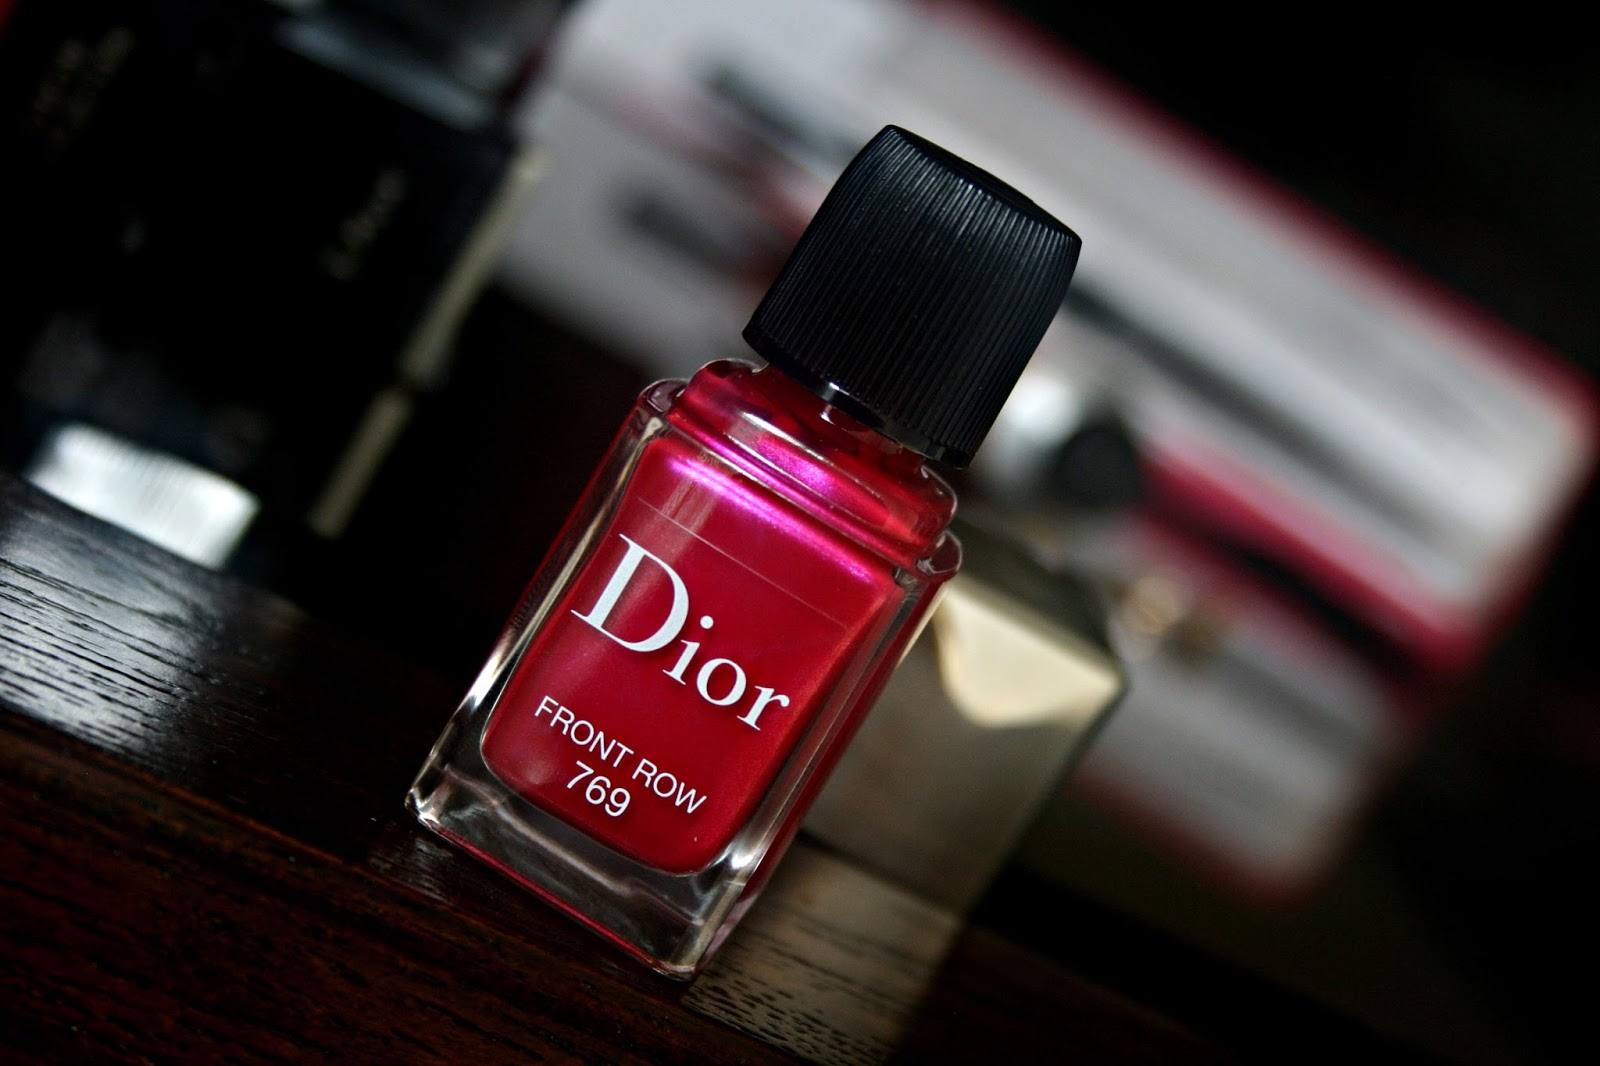 Dior Vernis Gel Shine and Long Wear Nail Lacquer Front Row 769 Review, Photos & Swatches